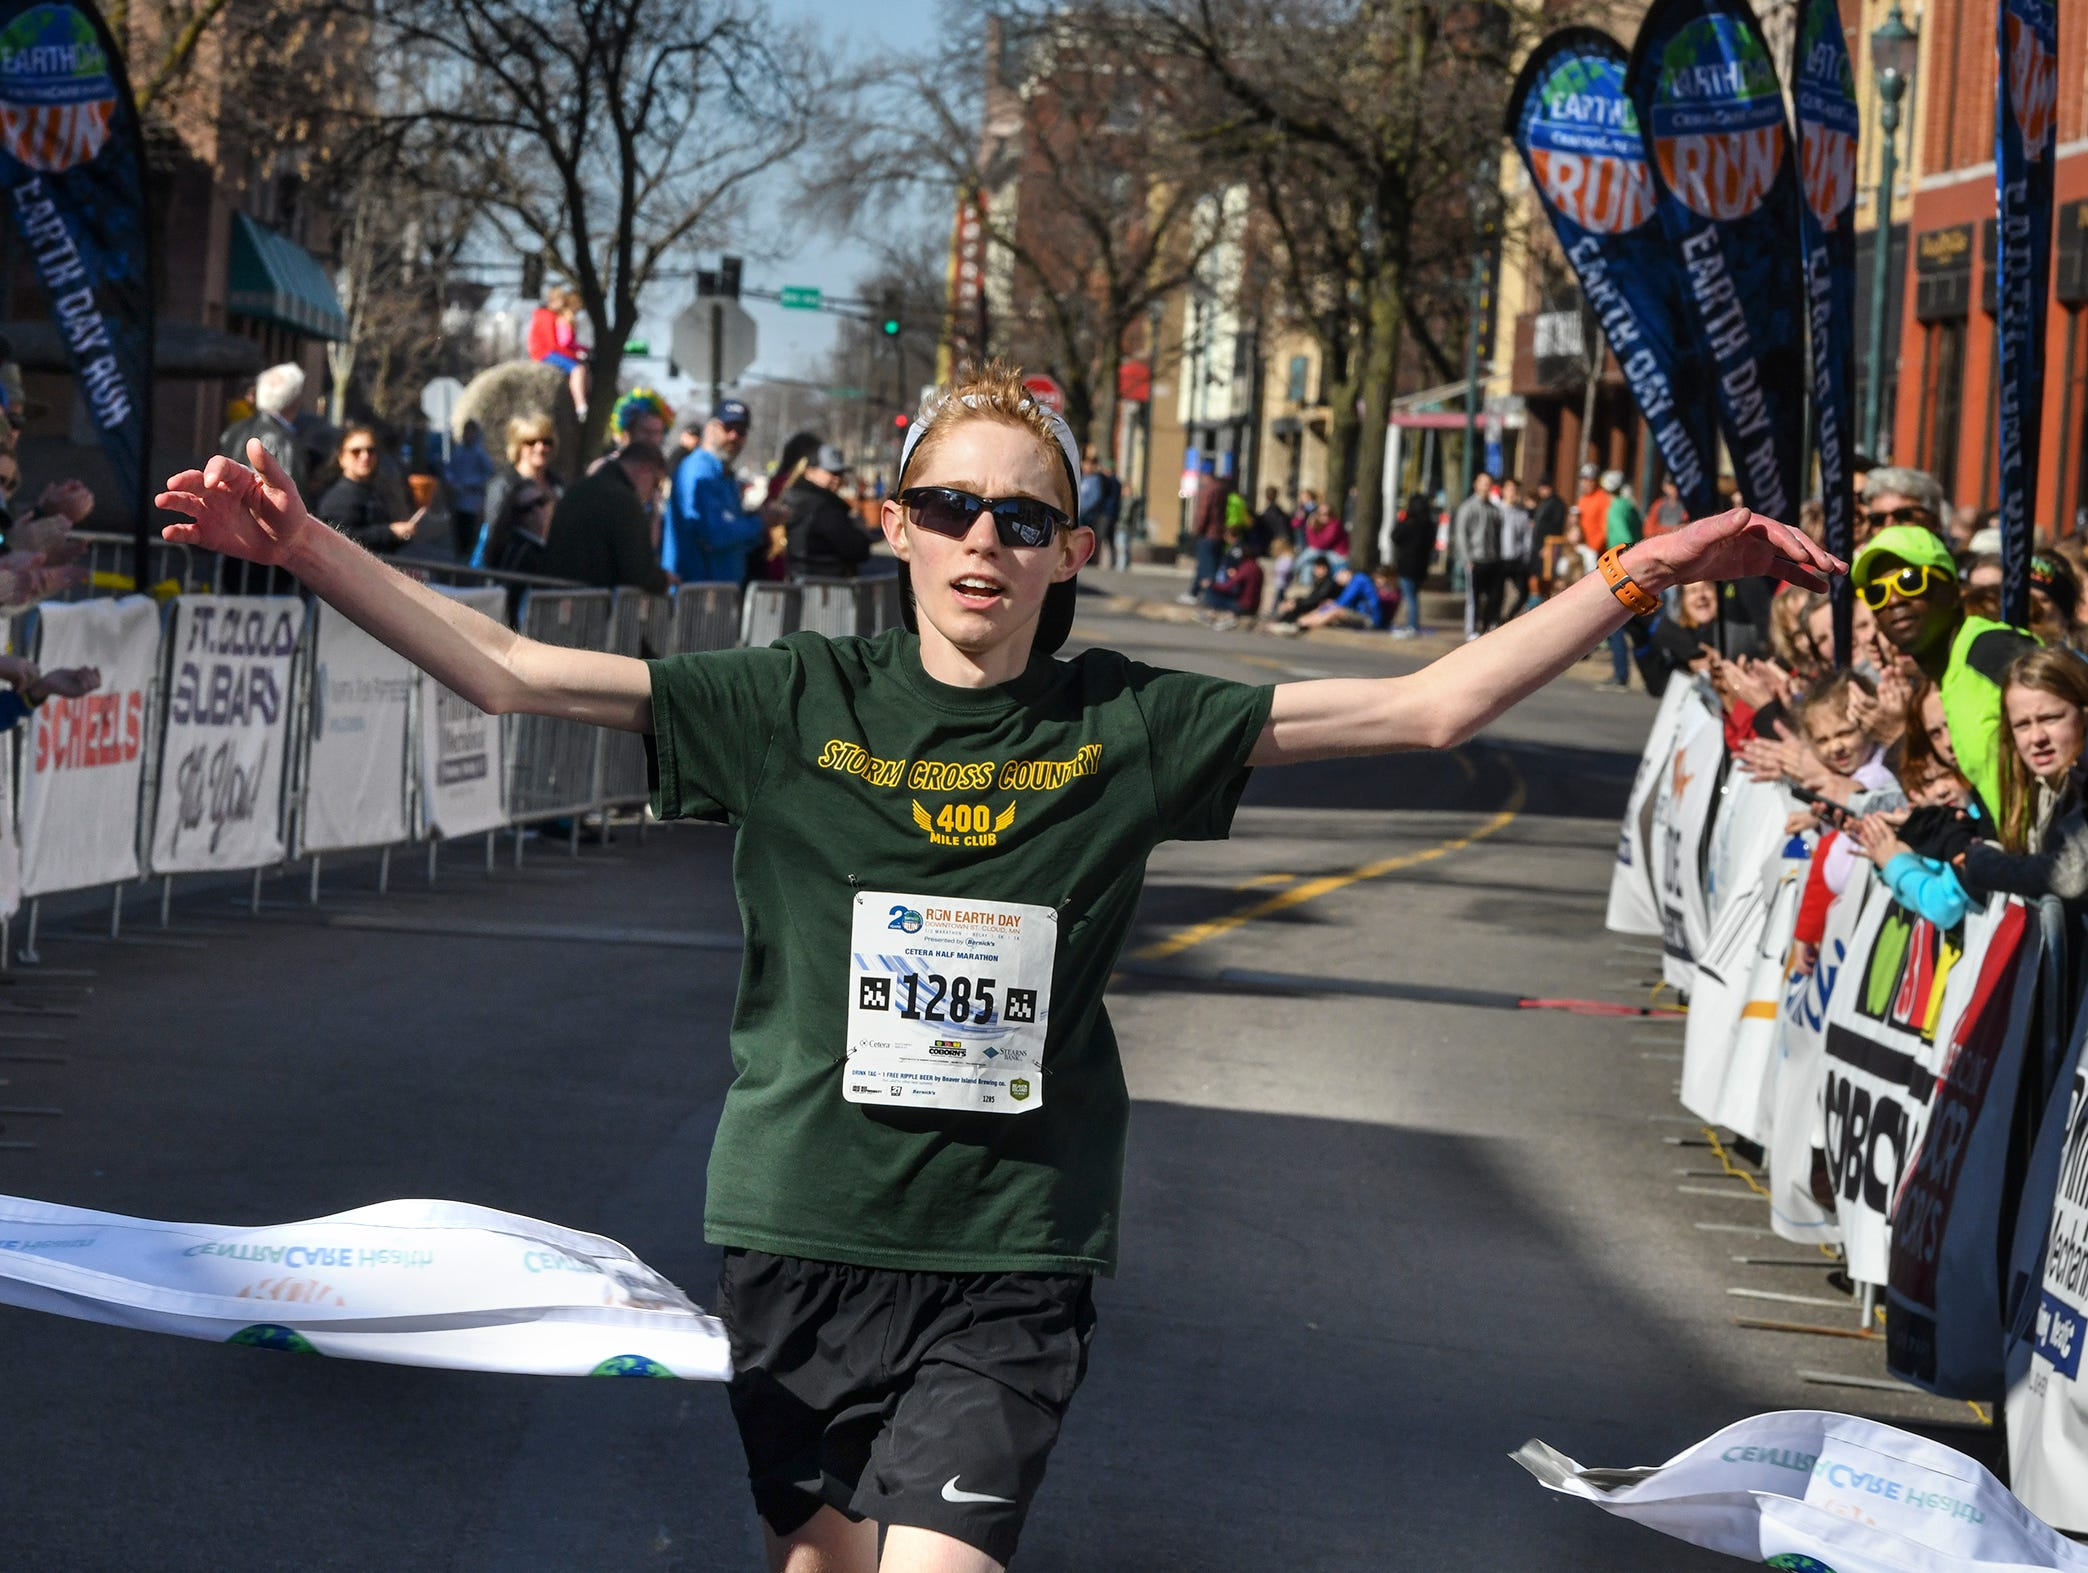 Samuel Ringger raises his arms as he crosses the finish line to win the Cetera Half Marathon as part of CentraCare Health Earth Day Run activities Saturday, April 20, in downtown St. Cloud.